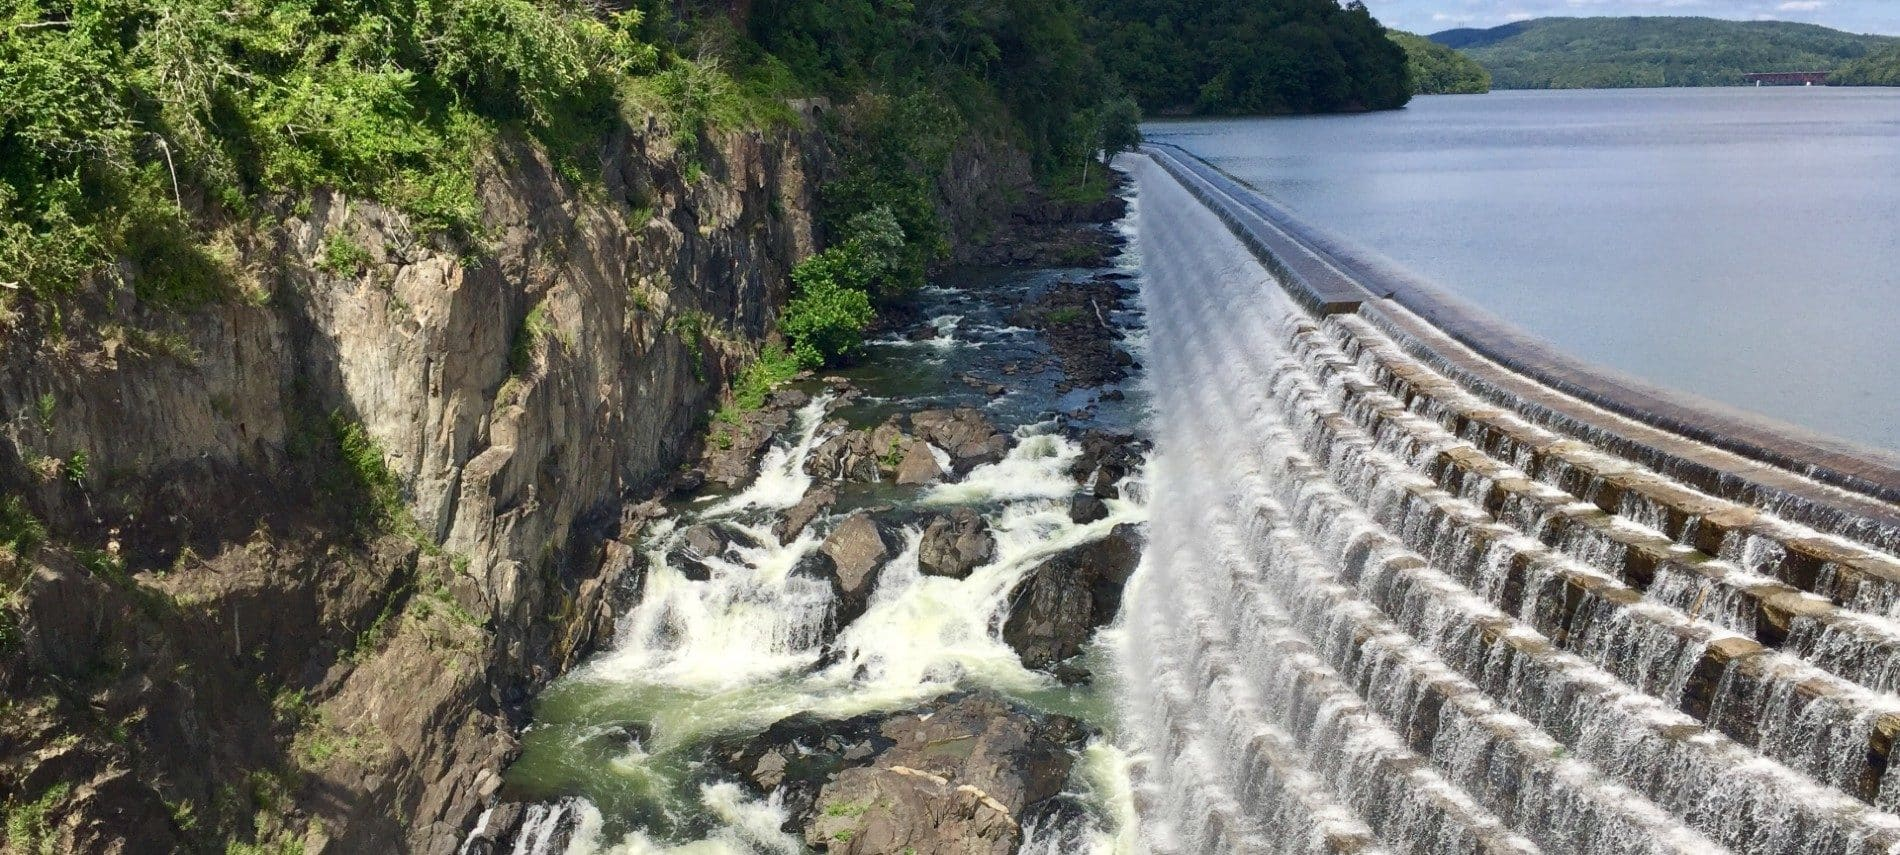 Expansive and unique retaining wall at a dam with water spilling over into a rocky gorge